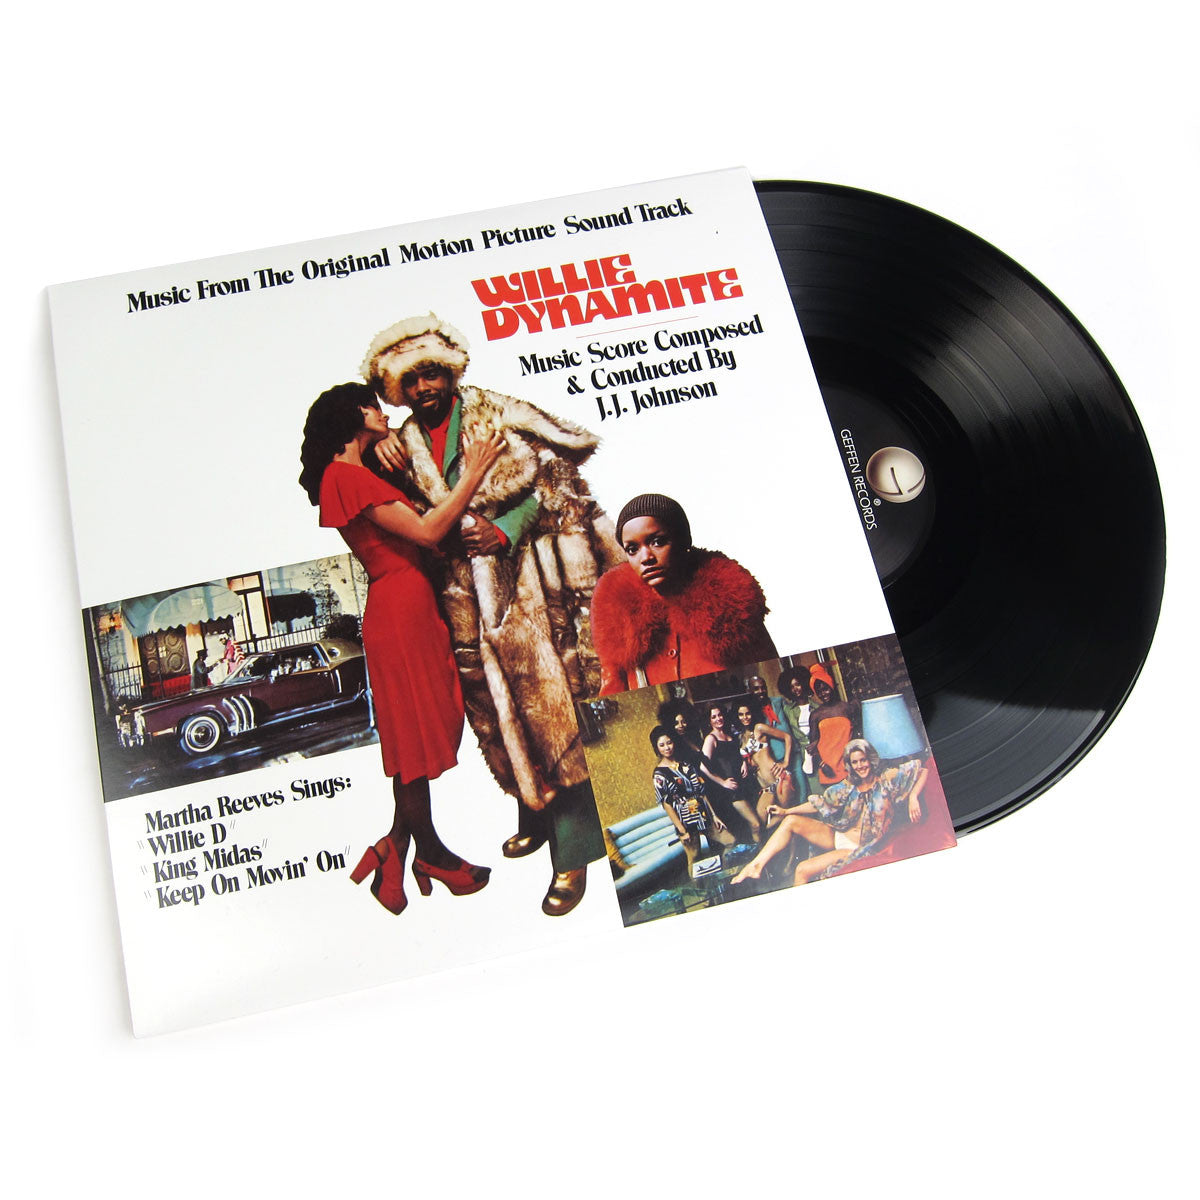 J.J. Johnson: Willie Dynamite OST (Pinky Ring) Vinyl LP